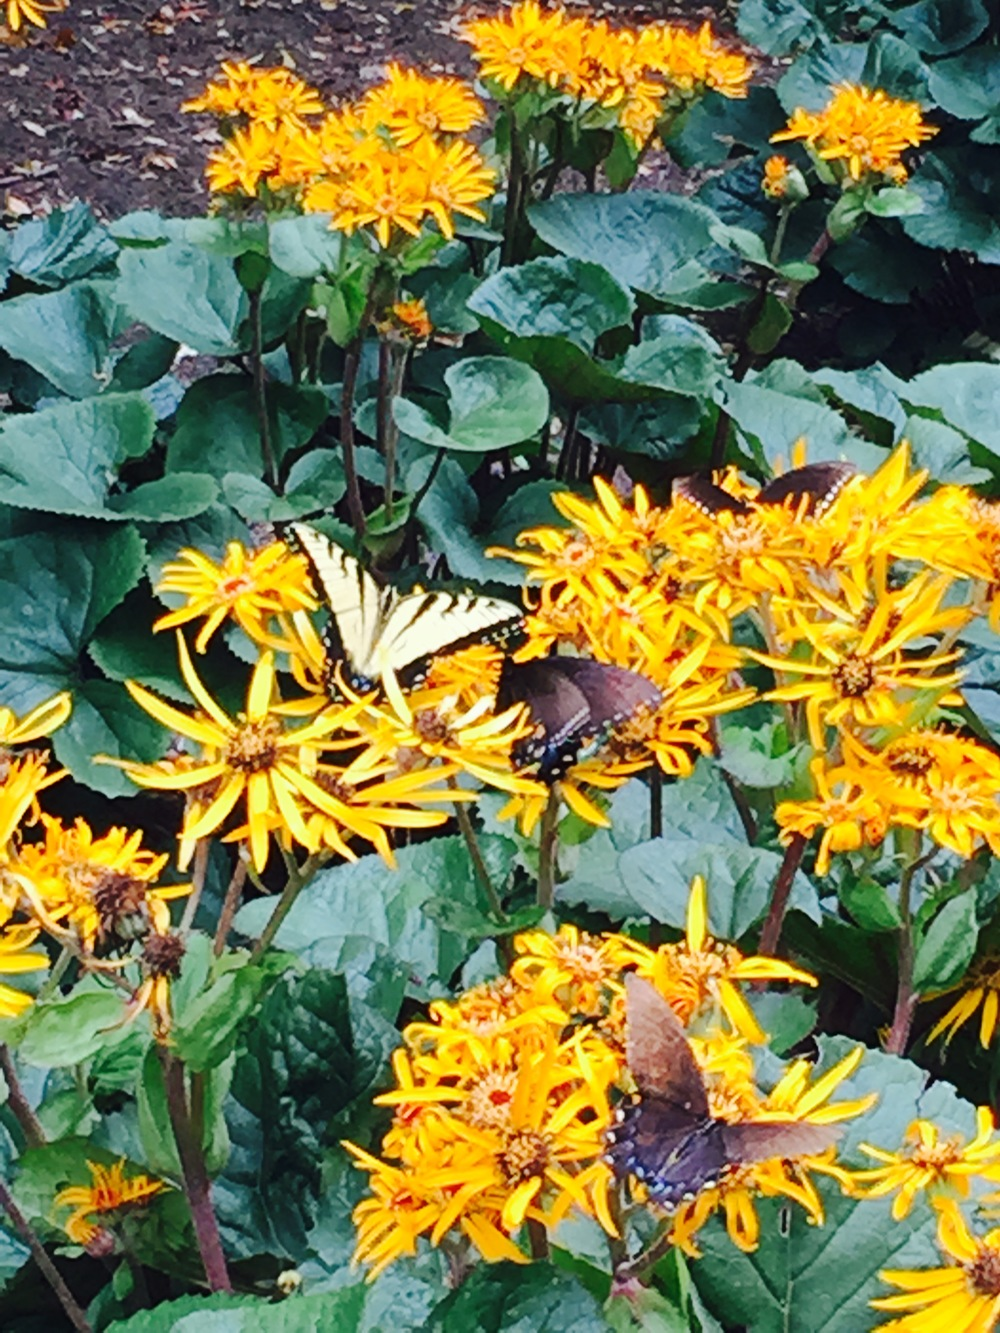 Ligularia is a butterfly magnet. Shade plants can be pollinators too.